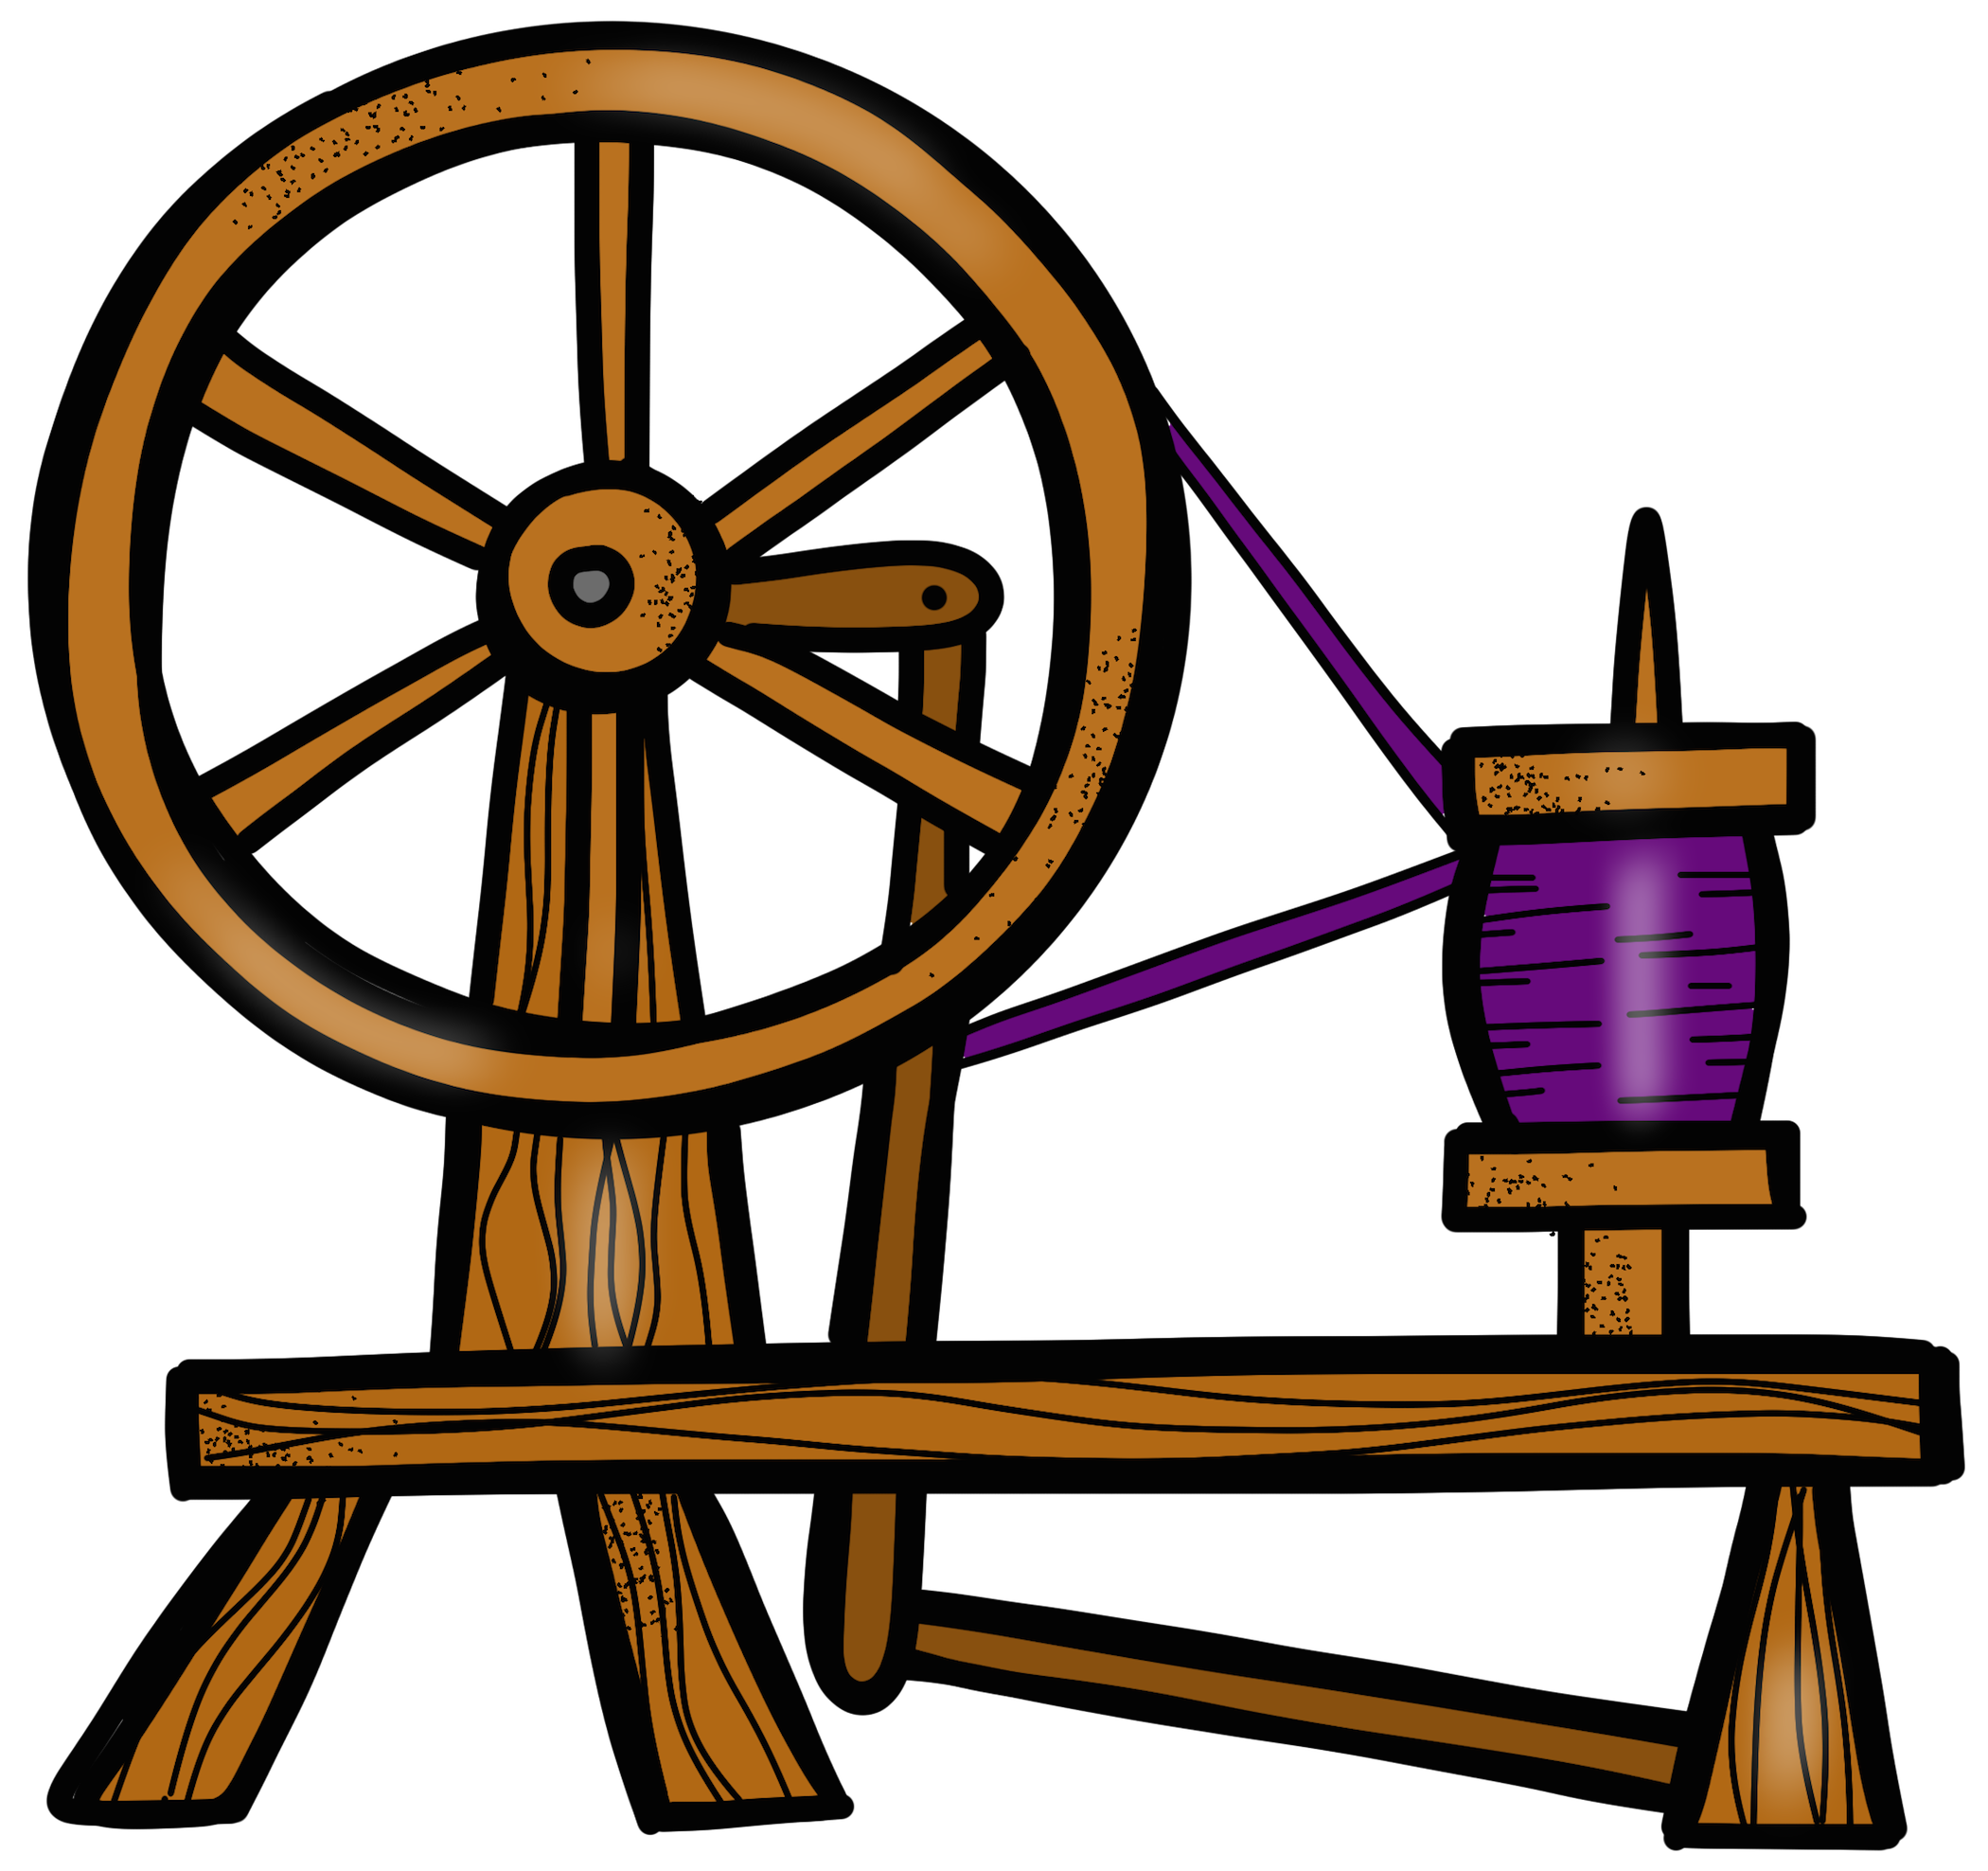 picture royalty free Spindle clip art transprent. Sleeping beauty spinning wheel clipart.